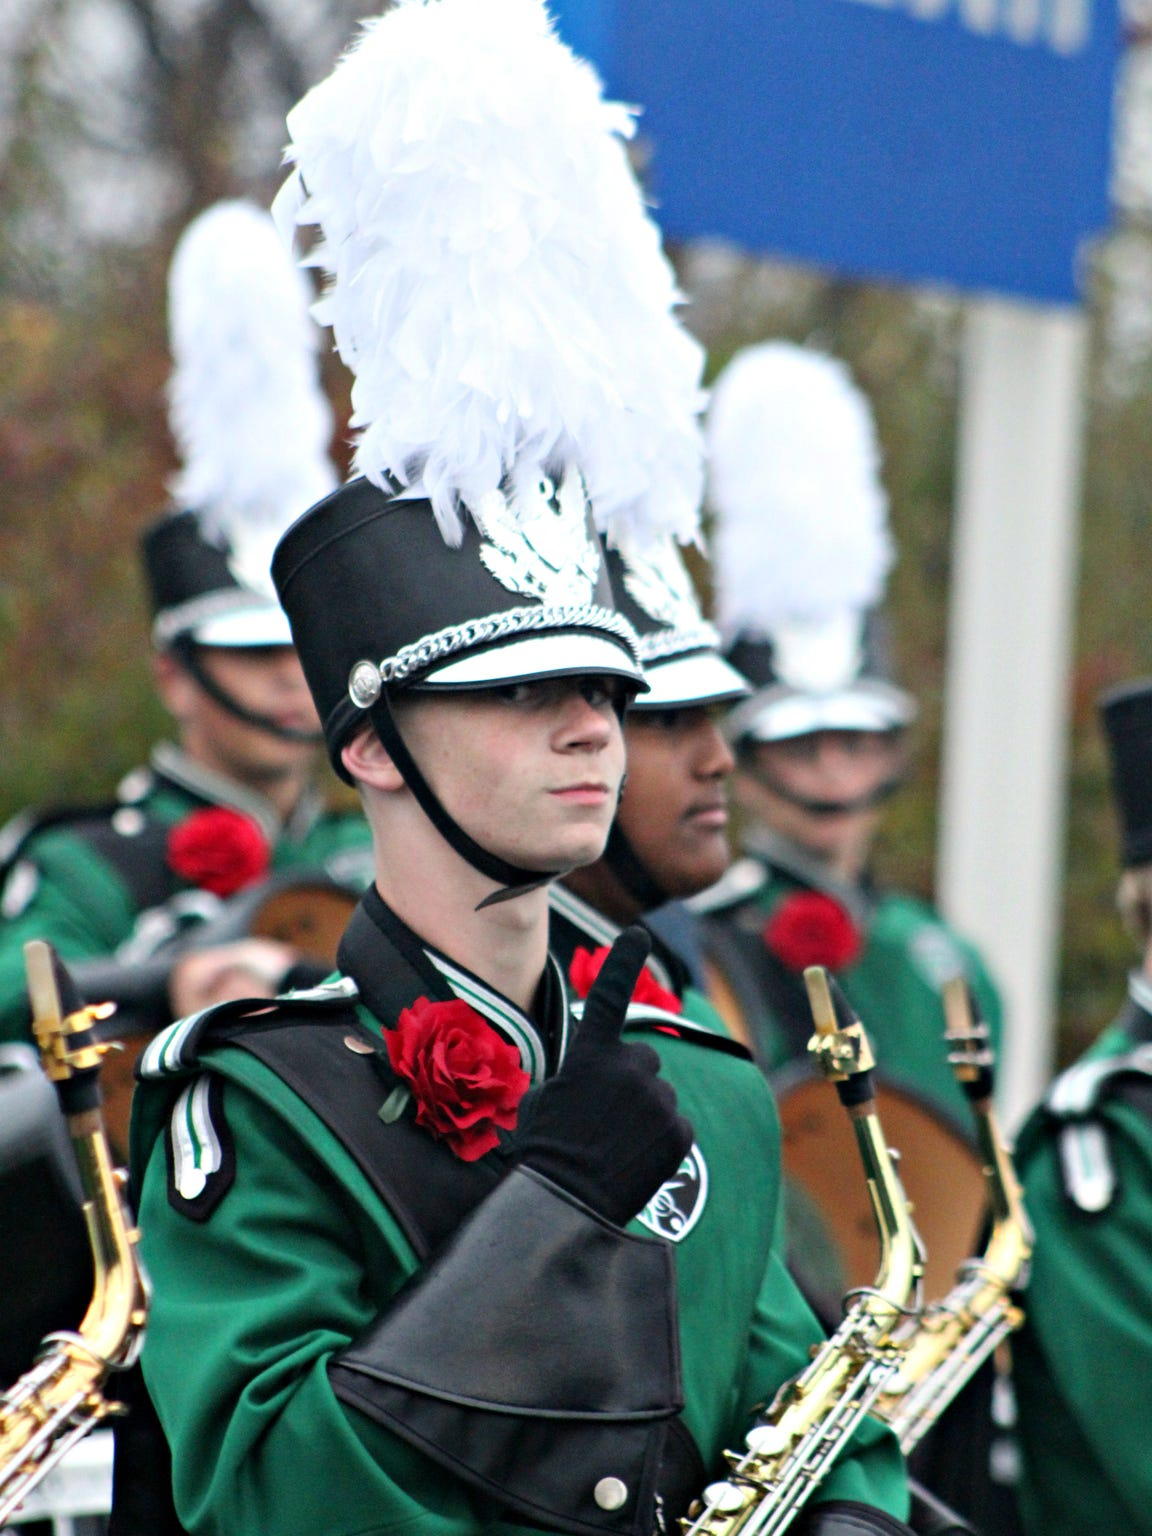 West Deptford High School Eagle Marching Band saxophone